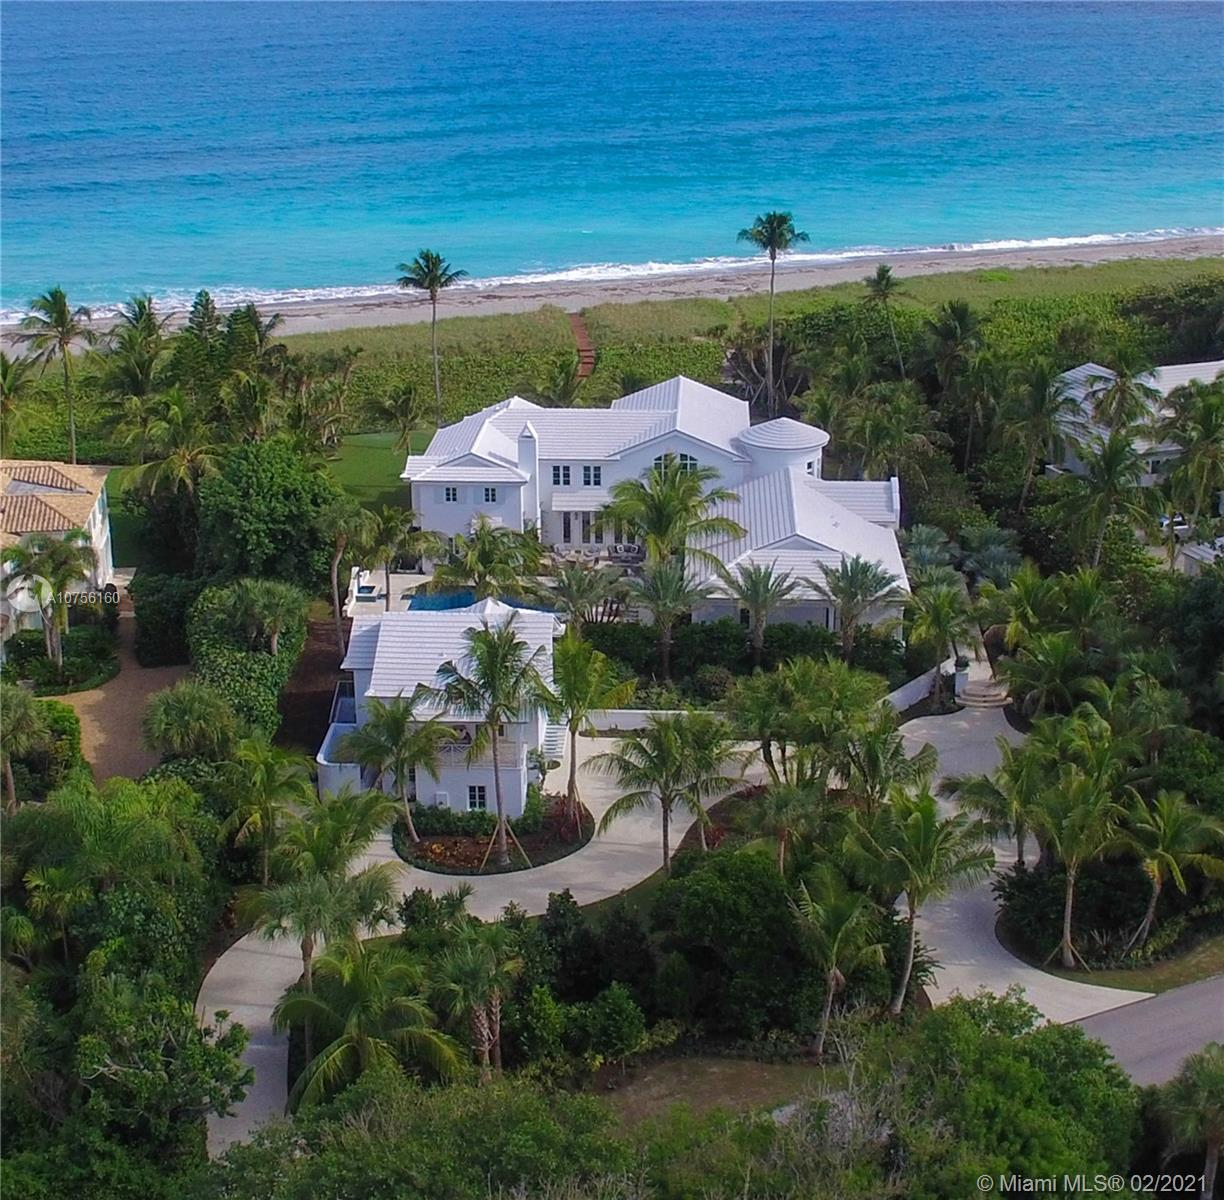 423 S Beach Rd, Hobe Sound, Florida